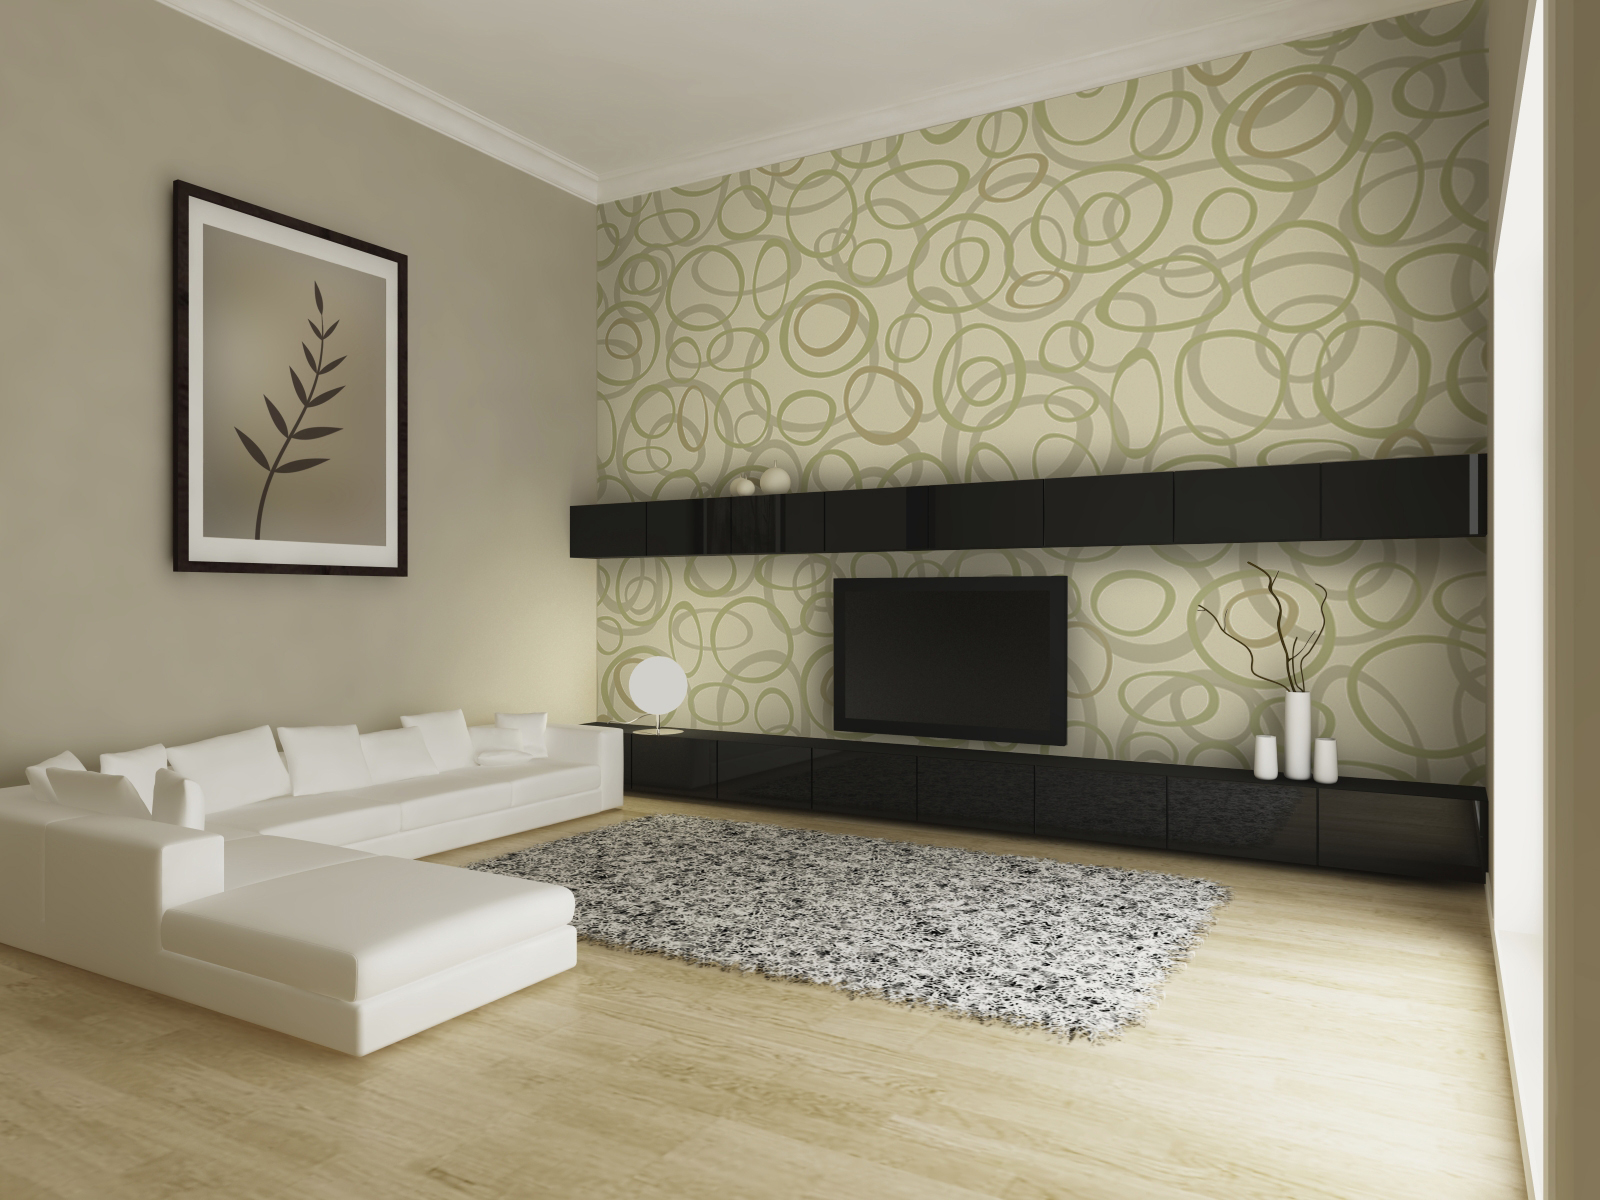 Interior design wallpaper 1600x1200 81460 for Interior wallpaper designs india